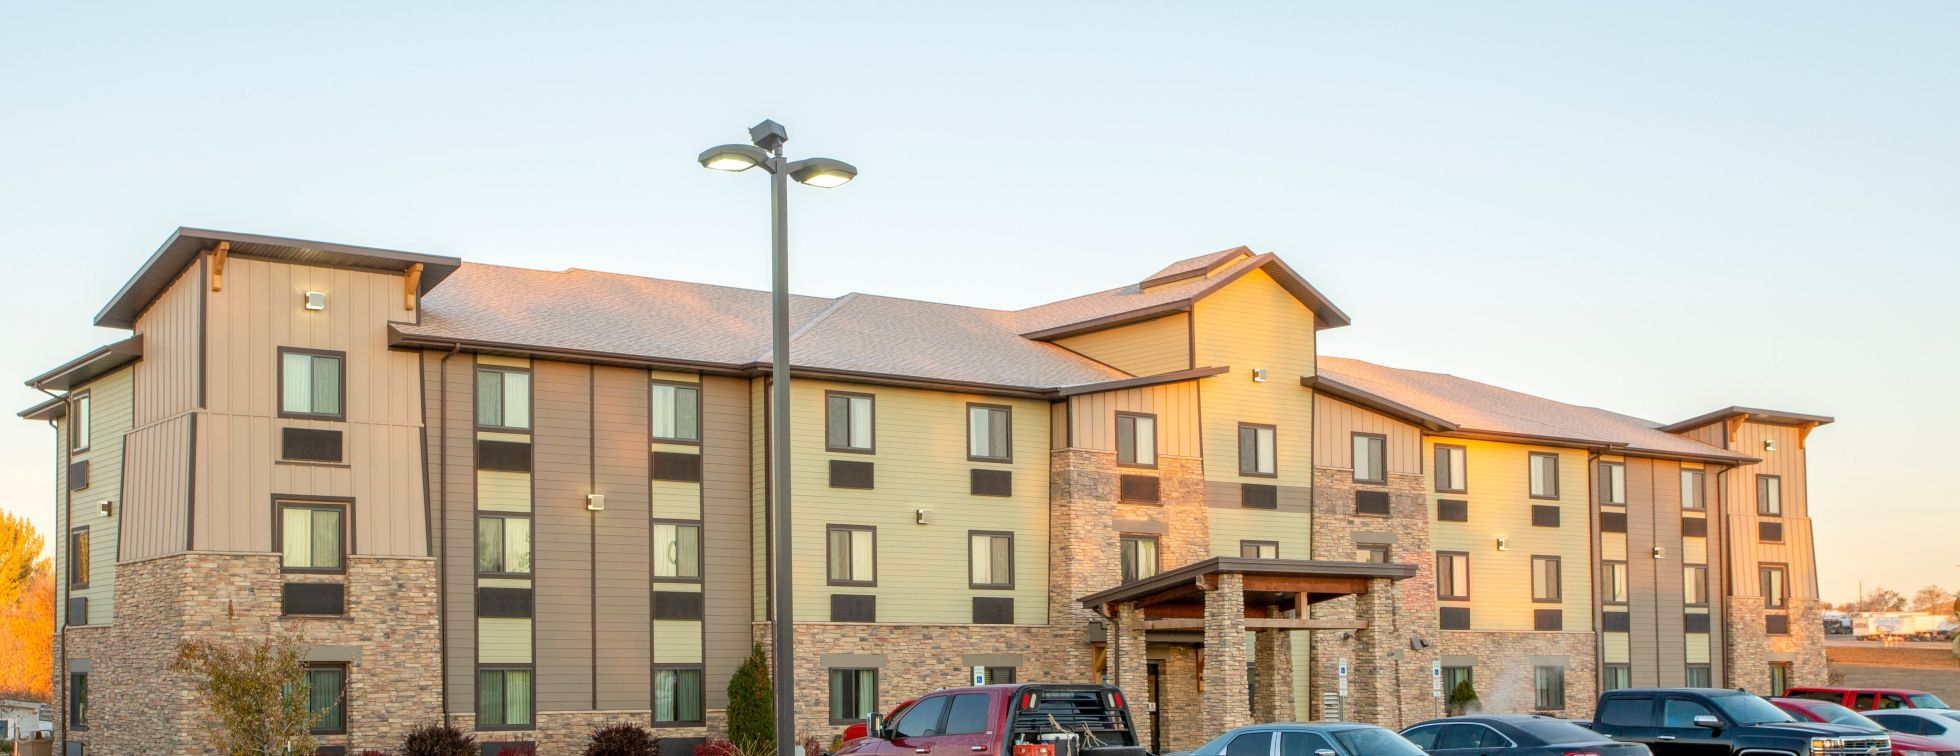 My Place Hotel Bismarck Exterior Image